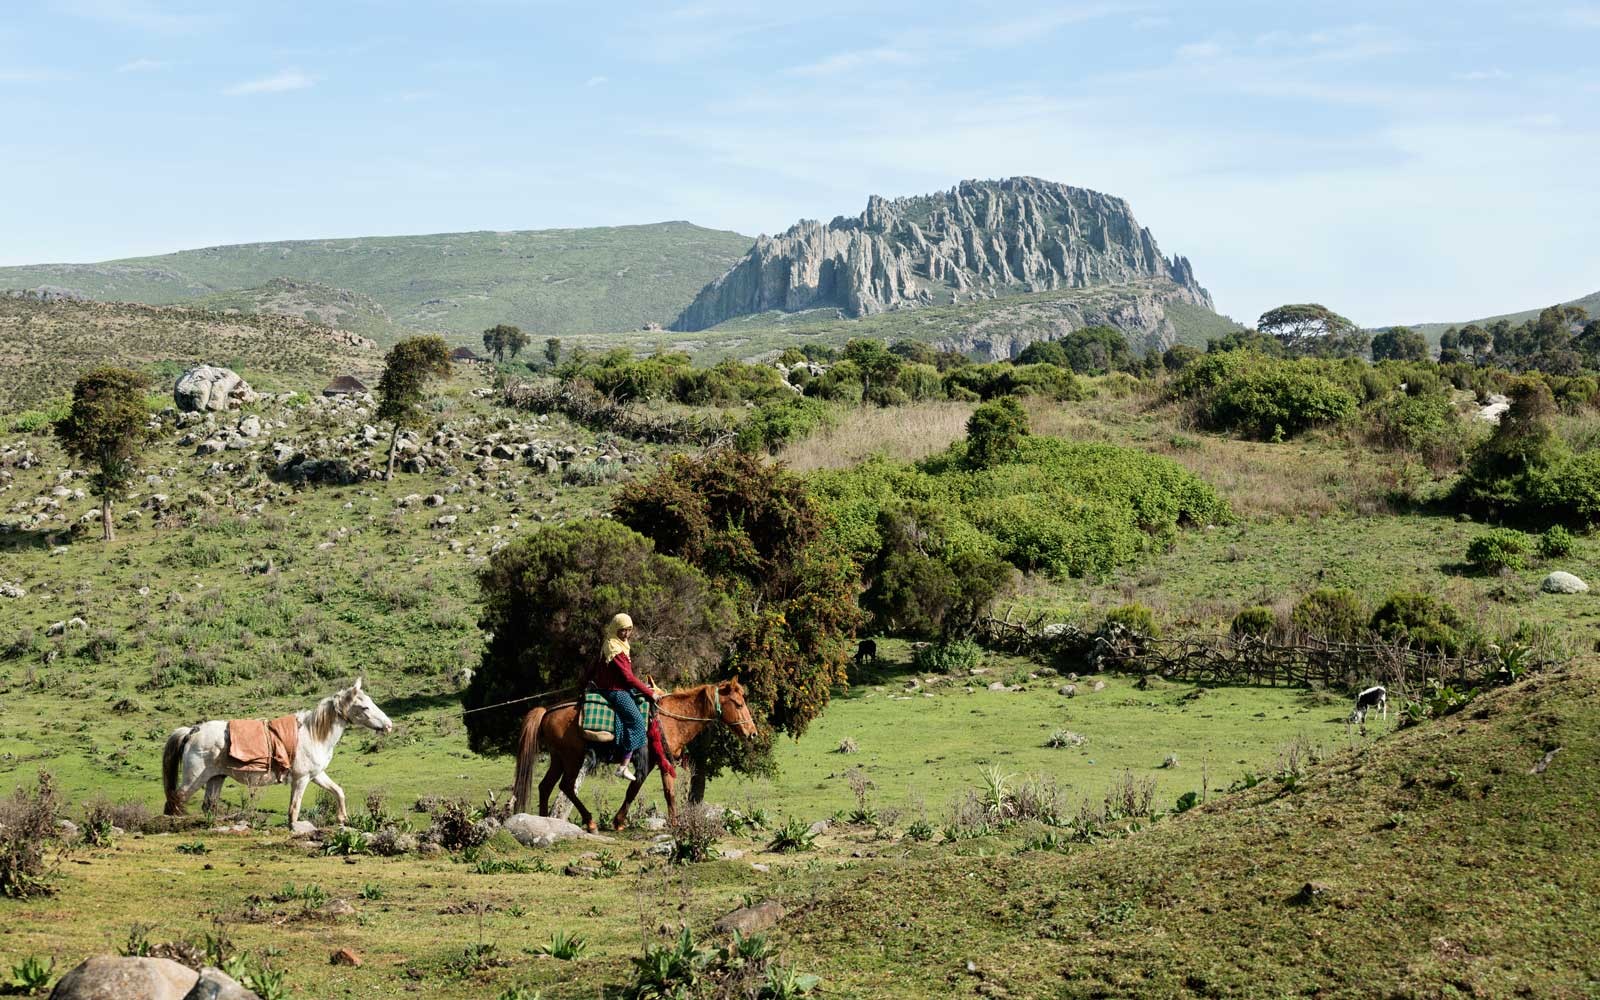 Bale Mountains, Ethiopia